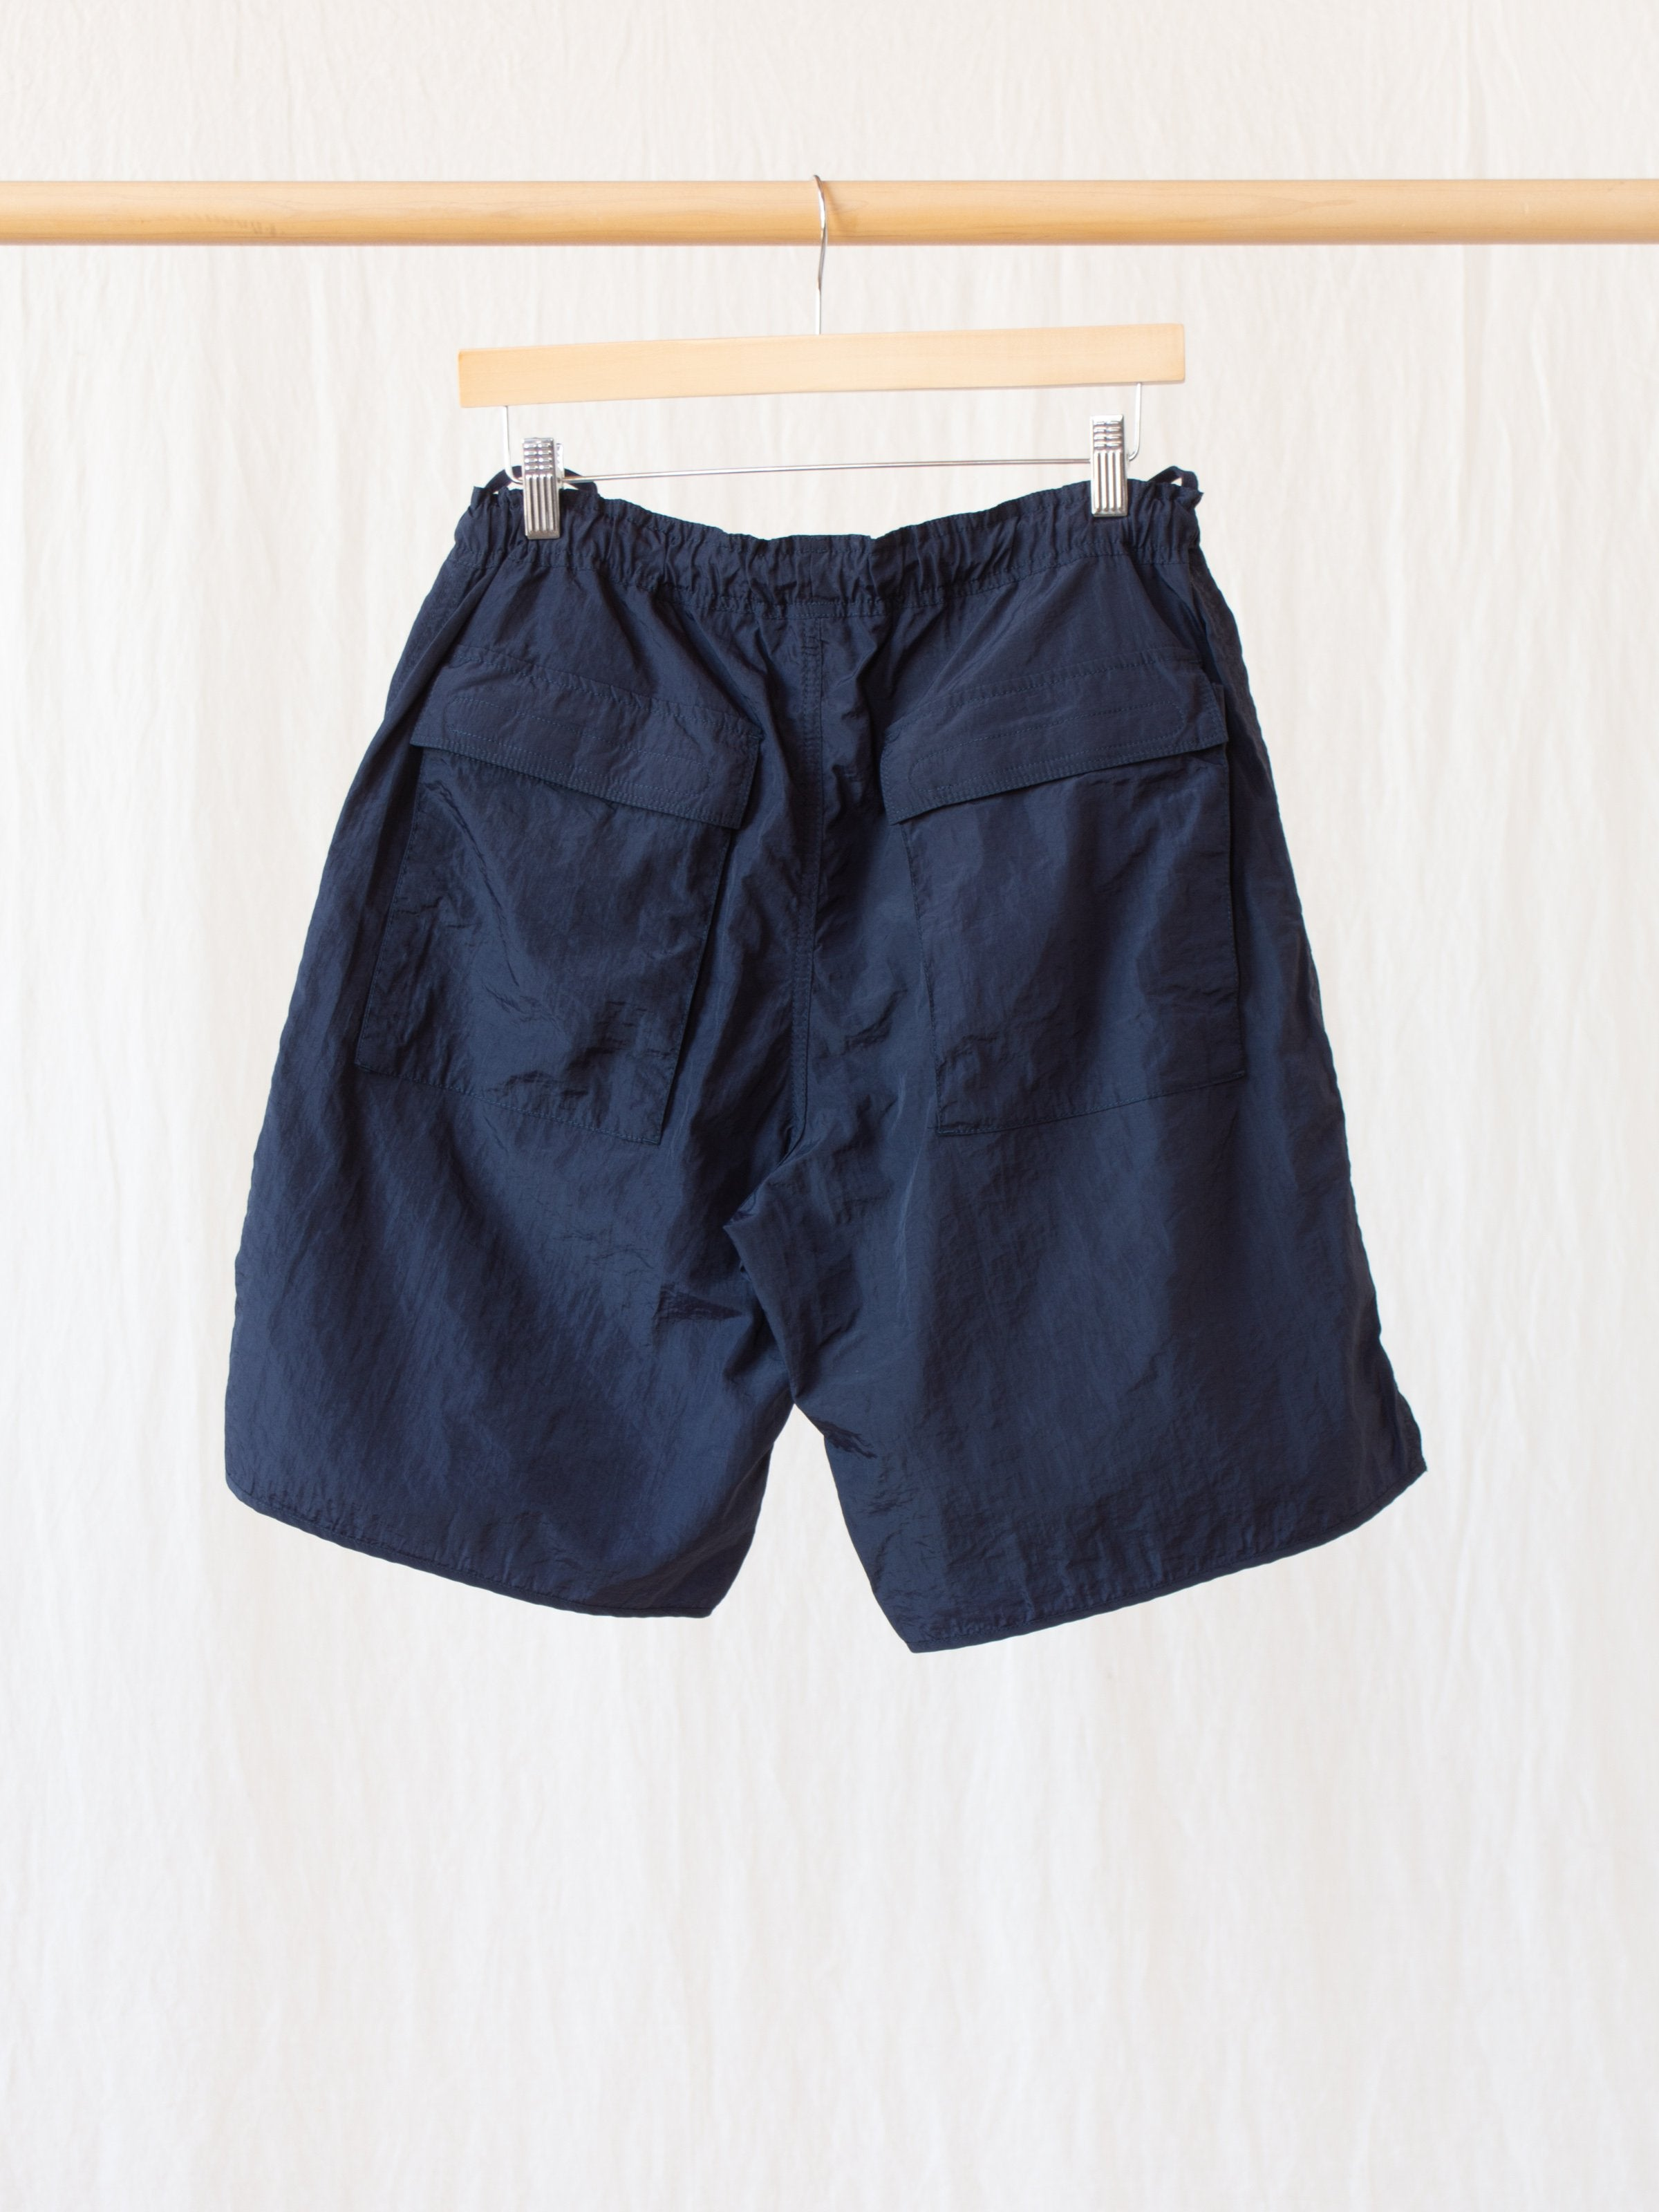 Namu Shop - Eastlogue CBR Shorts - Navy Nylon Washer